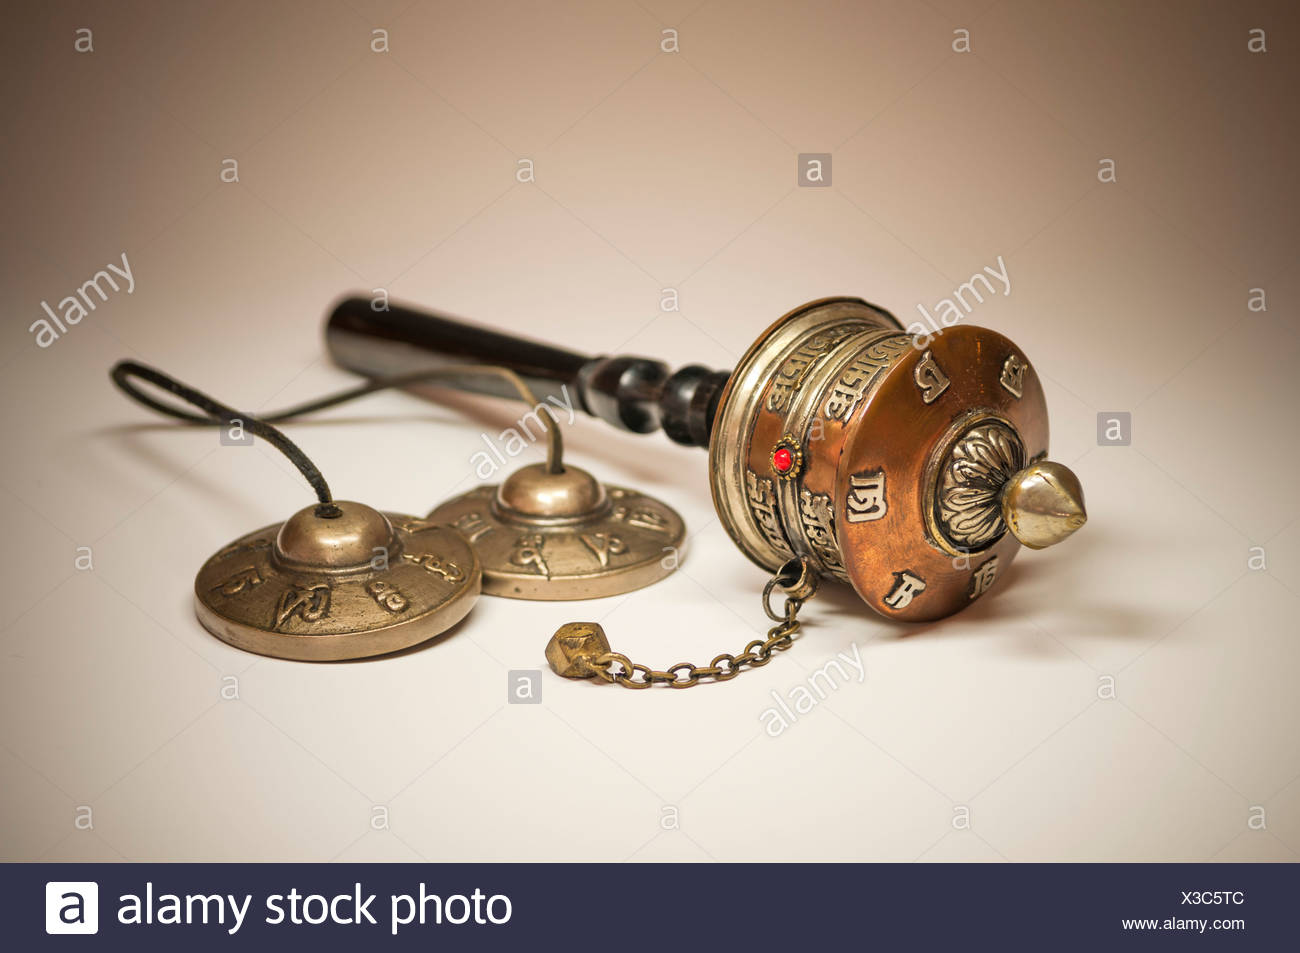 A Tibetan prayer mill and cymbals - Stock Image